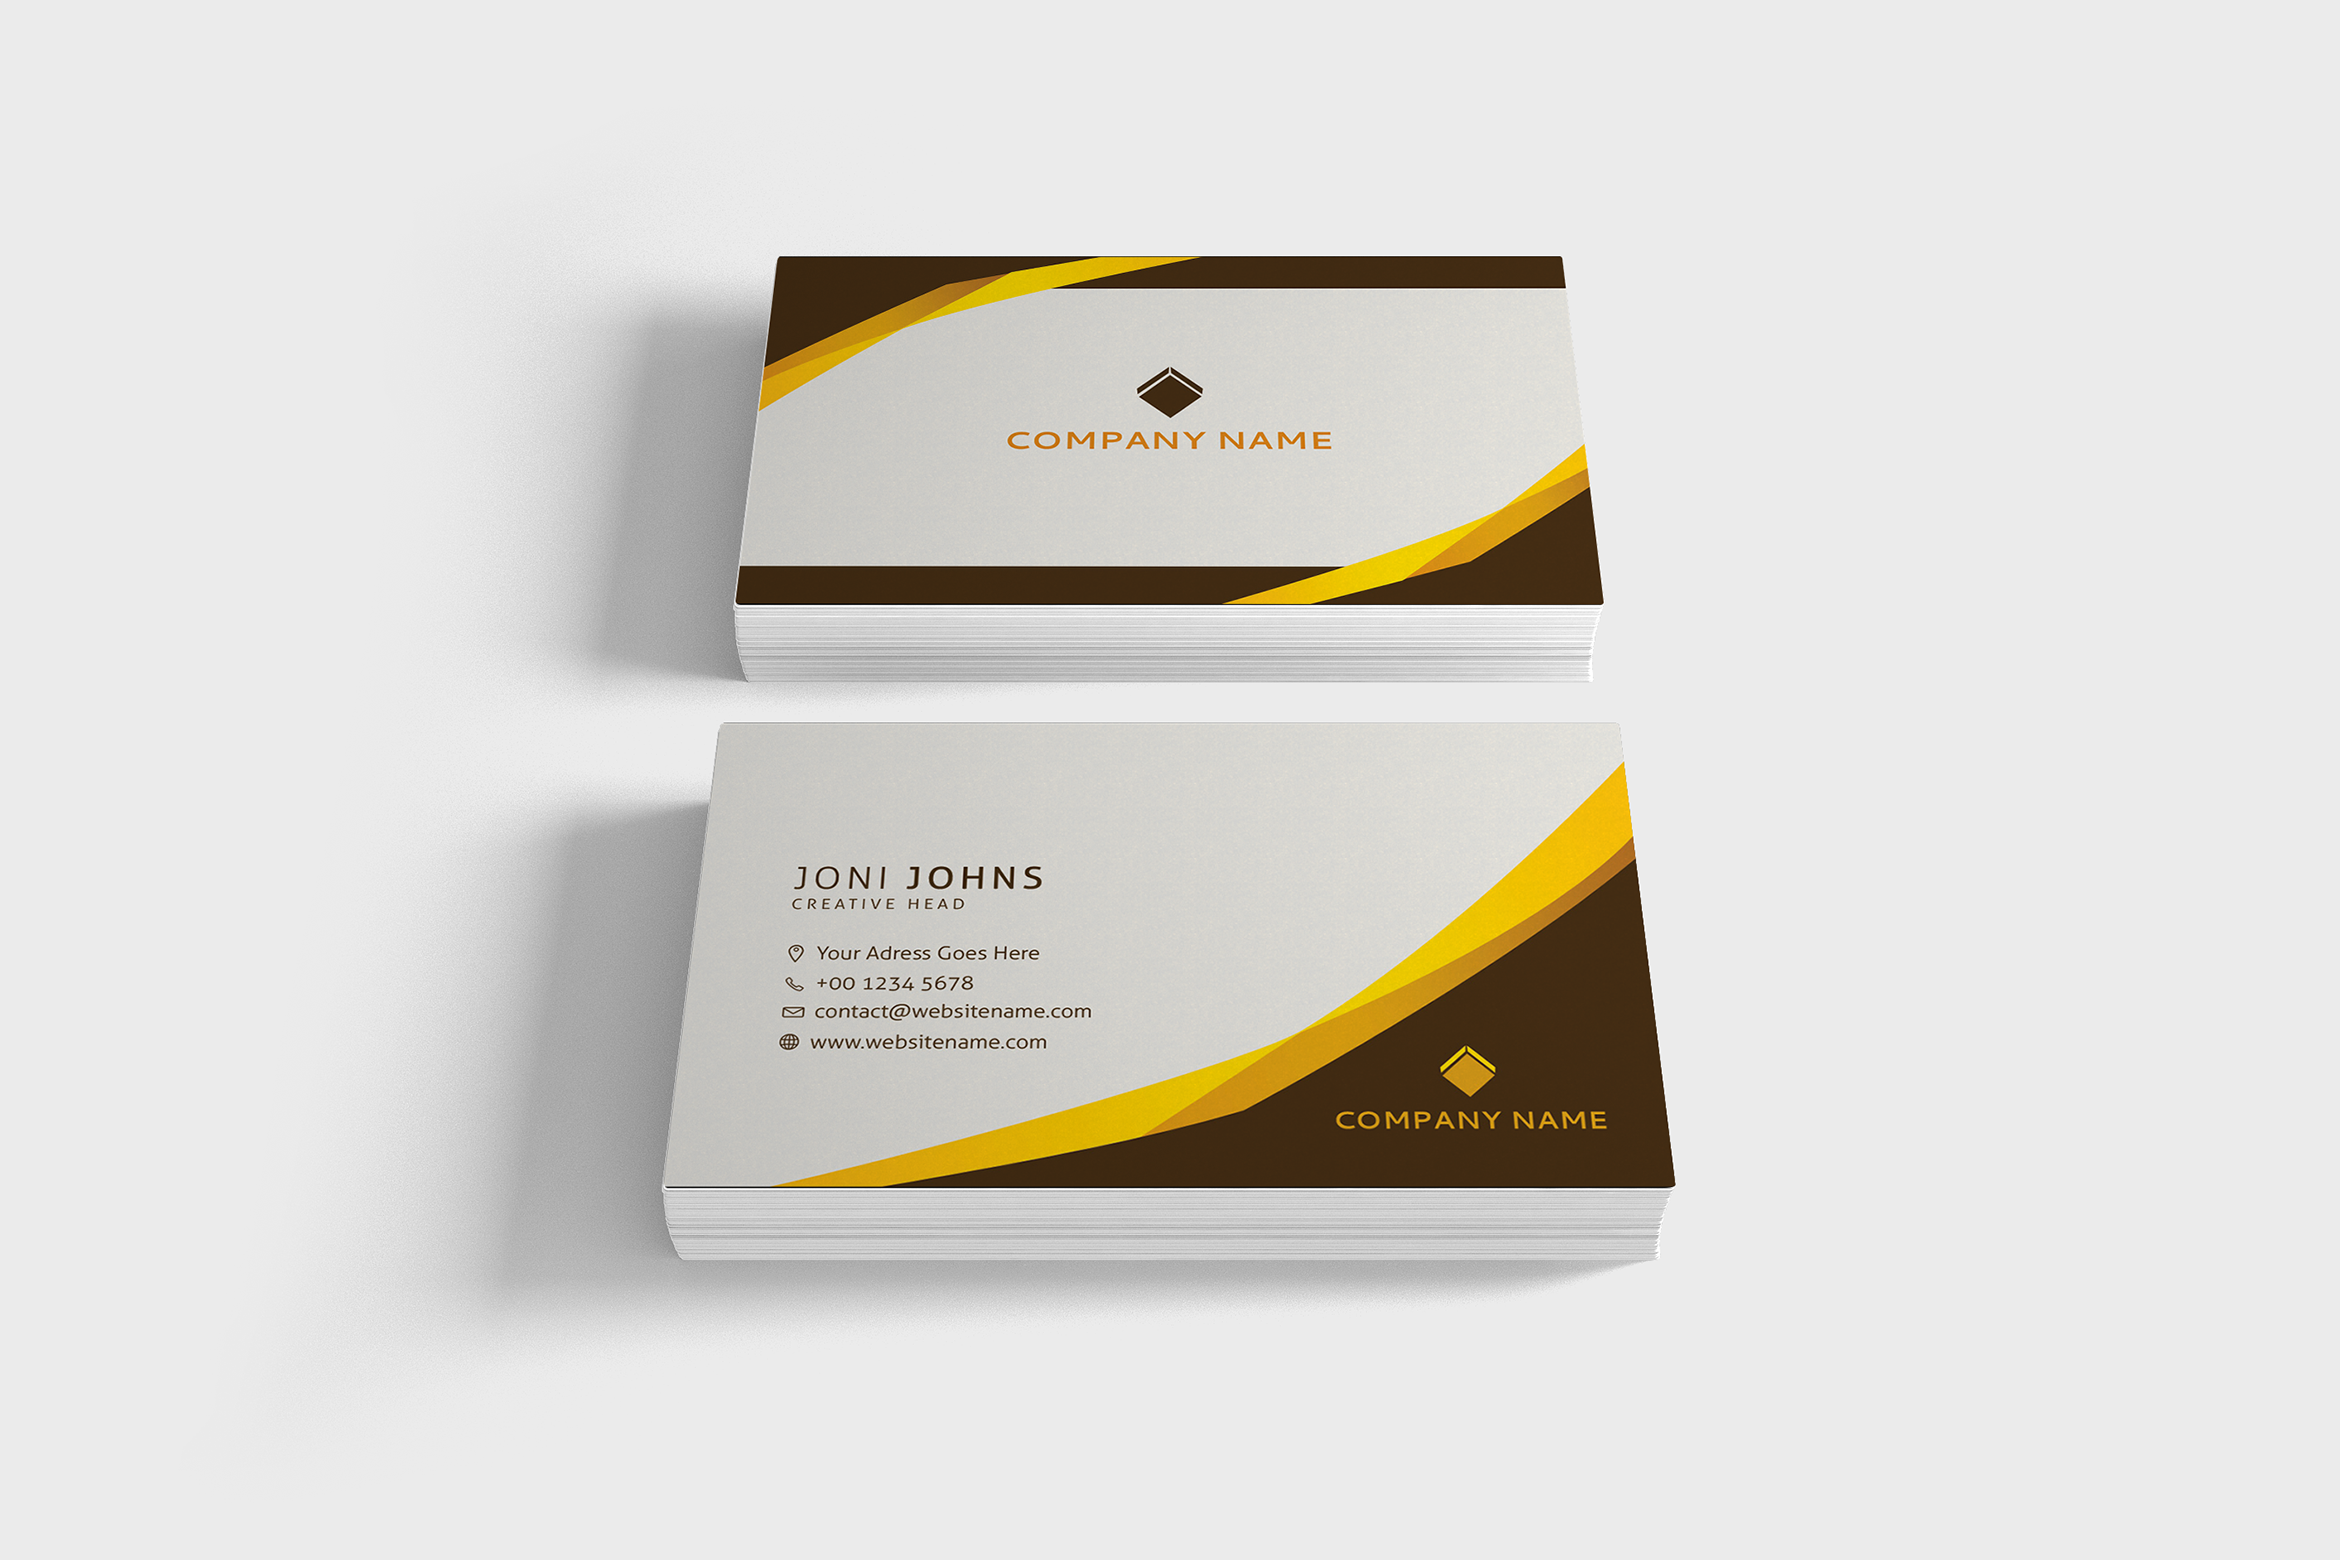 Business Card vol.09 example image 1